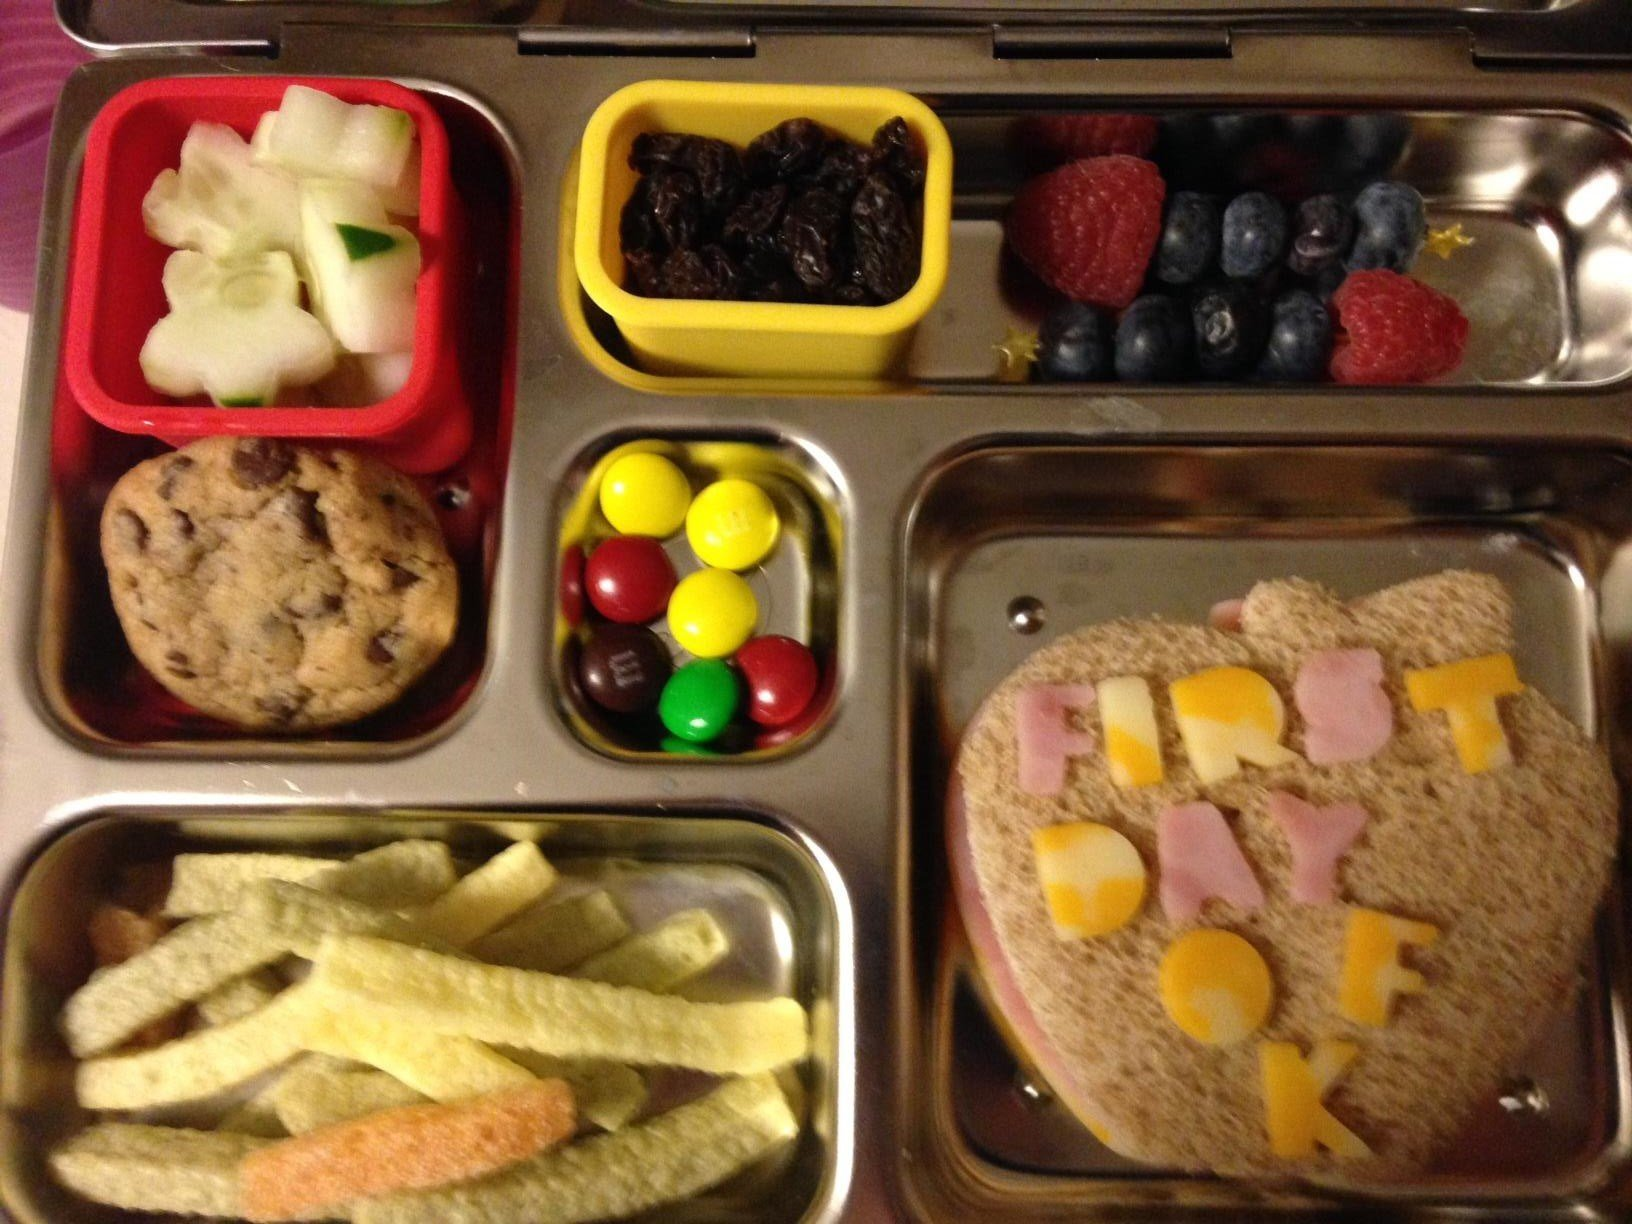 Andrea Tieskotter leaves messages for her kids in their lunches